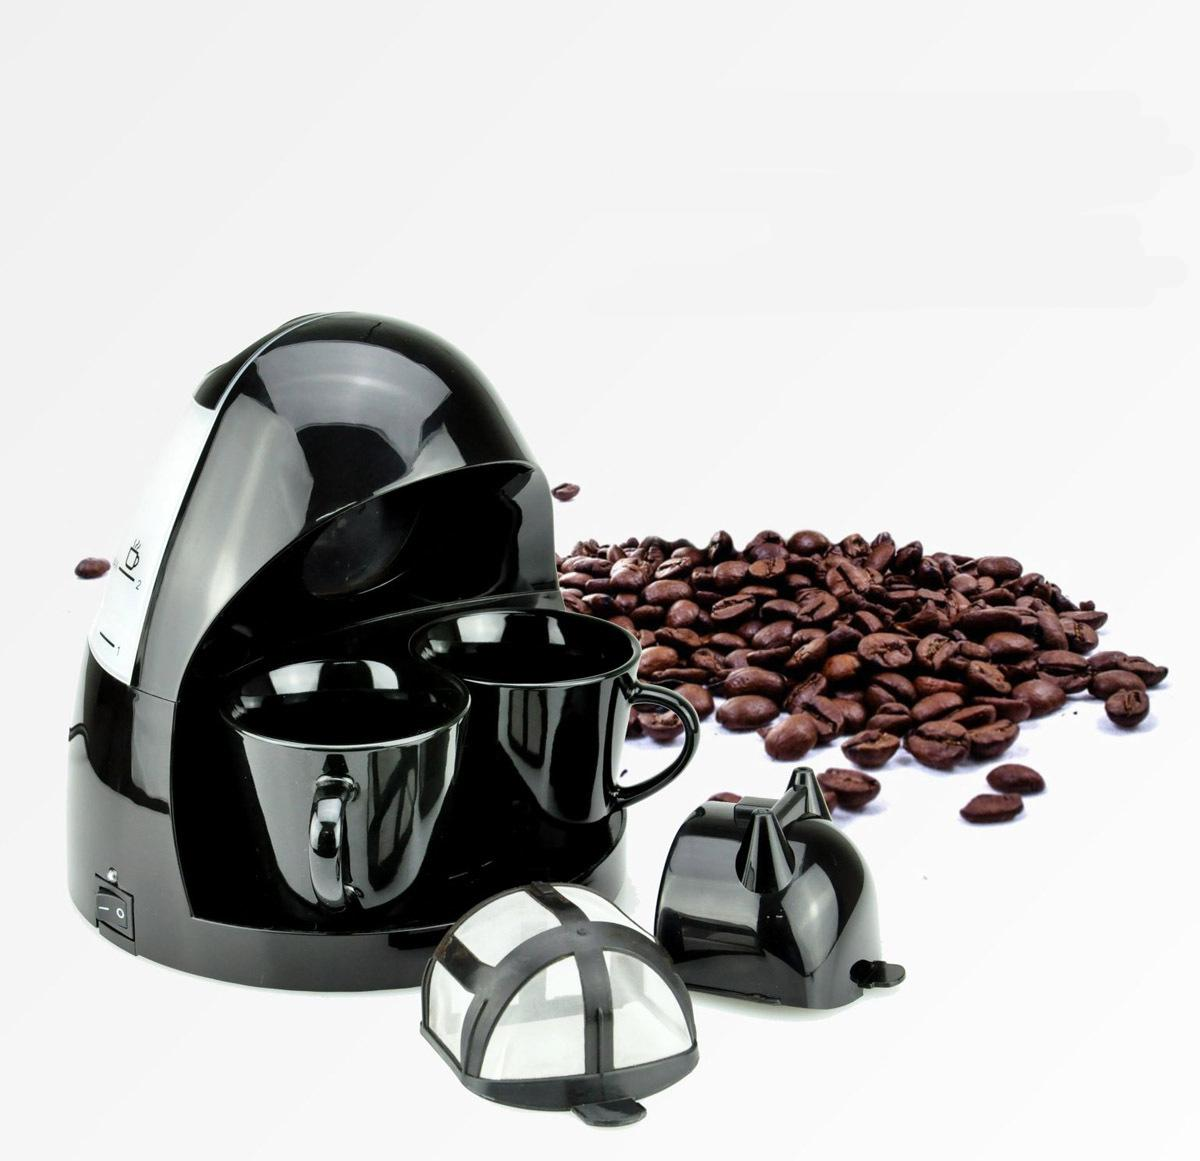 Automatic Coffee Maker with 2 Cups Coffee Machine For Home Kitchen European regulations .